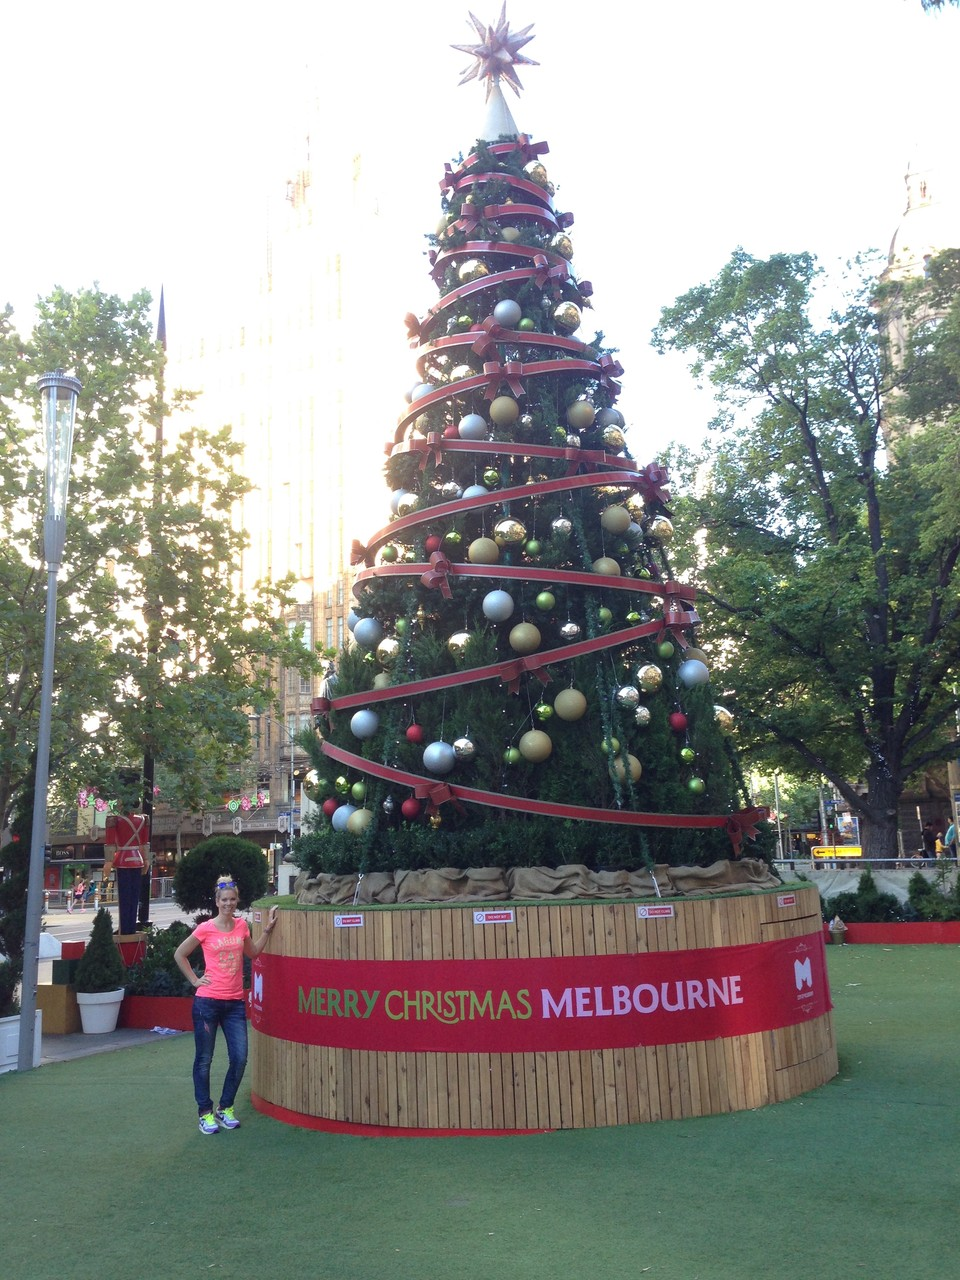 Merry Xmas in Melbourne